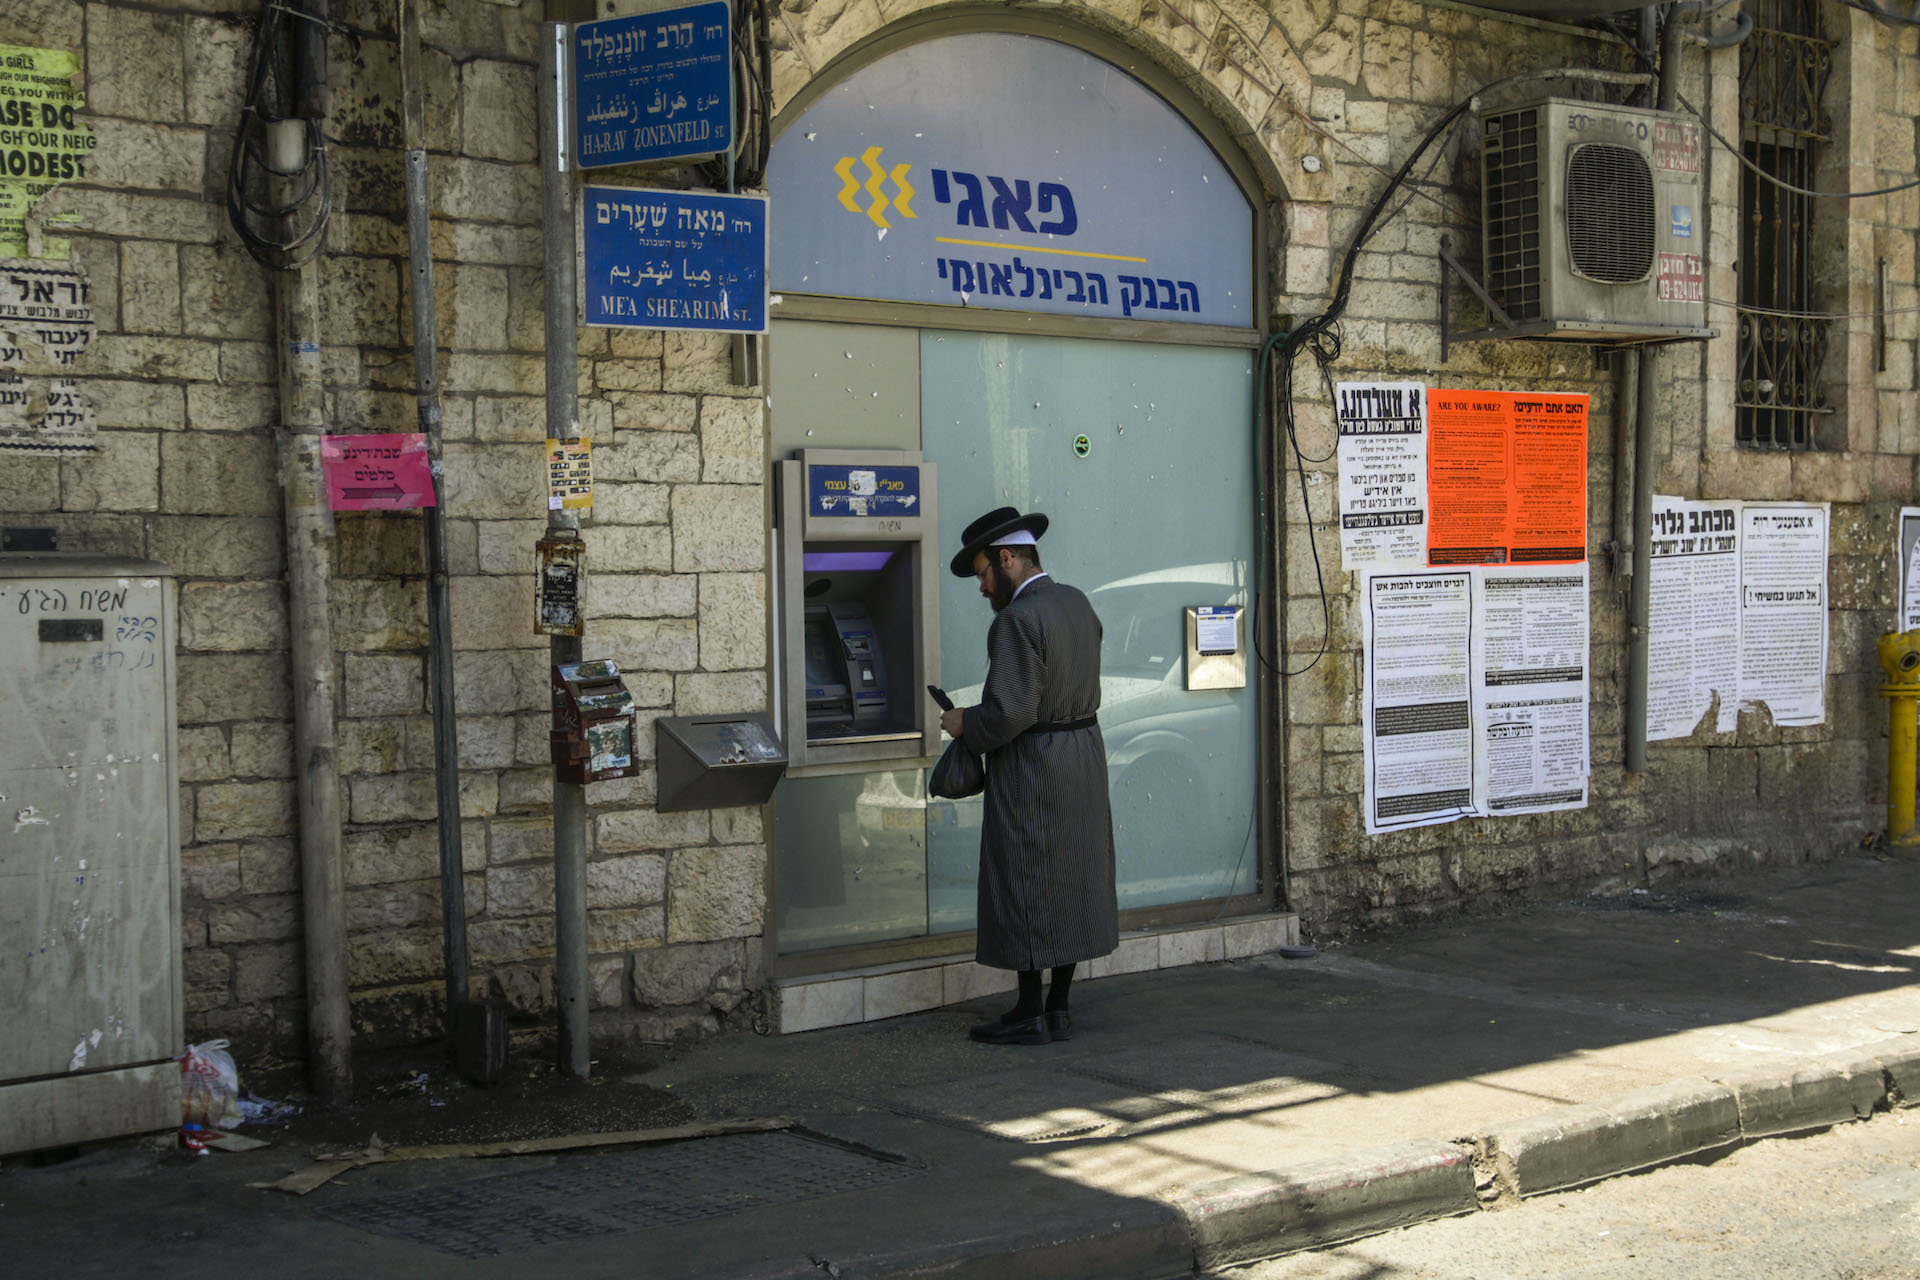 A man clad in a traditional Neturei Karta outfit uses a cash machine in Jerusalem's Mea Shearim neighborhood. The Neturei Karta live among the Haredis, and mostly in the same fashion. They also hold anti-Zionist views and call for the dismantling of the Jewish State.